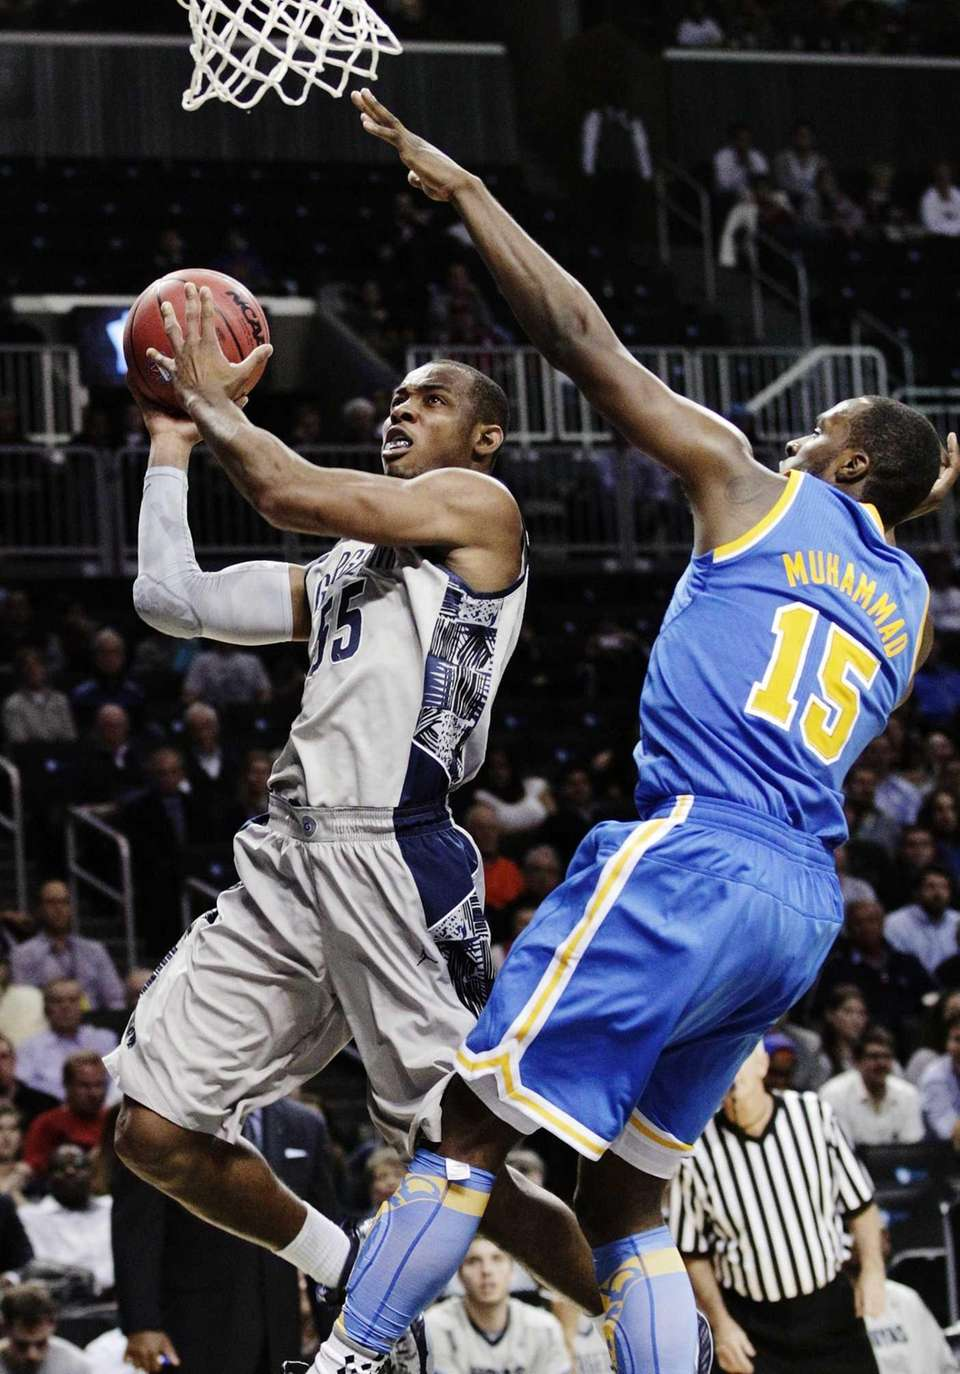 Georgetown's Jabril Trawick drives past UCLA's Shabazz Muhammad